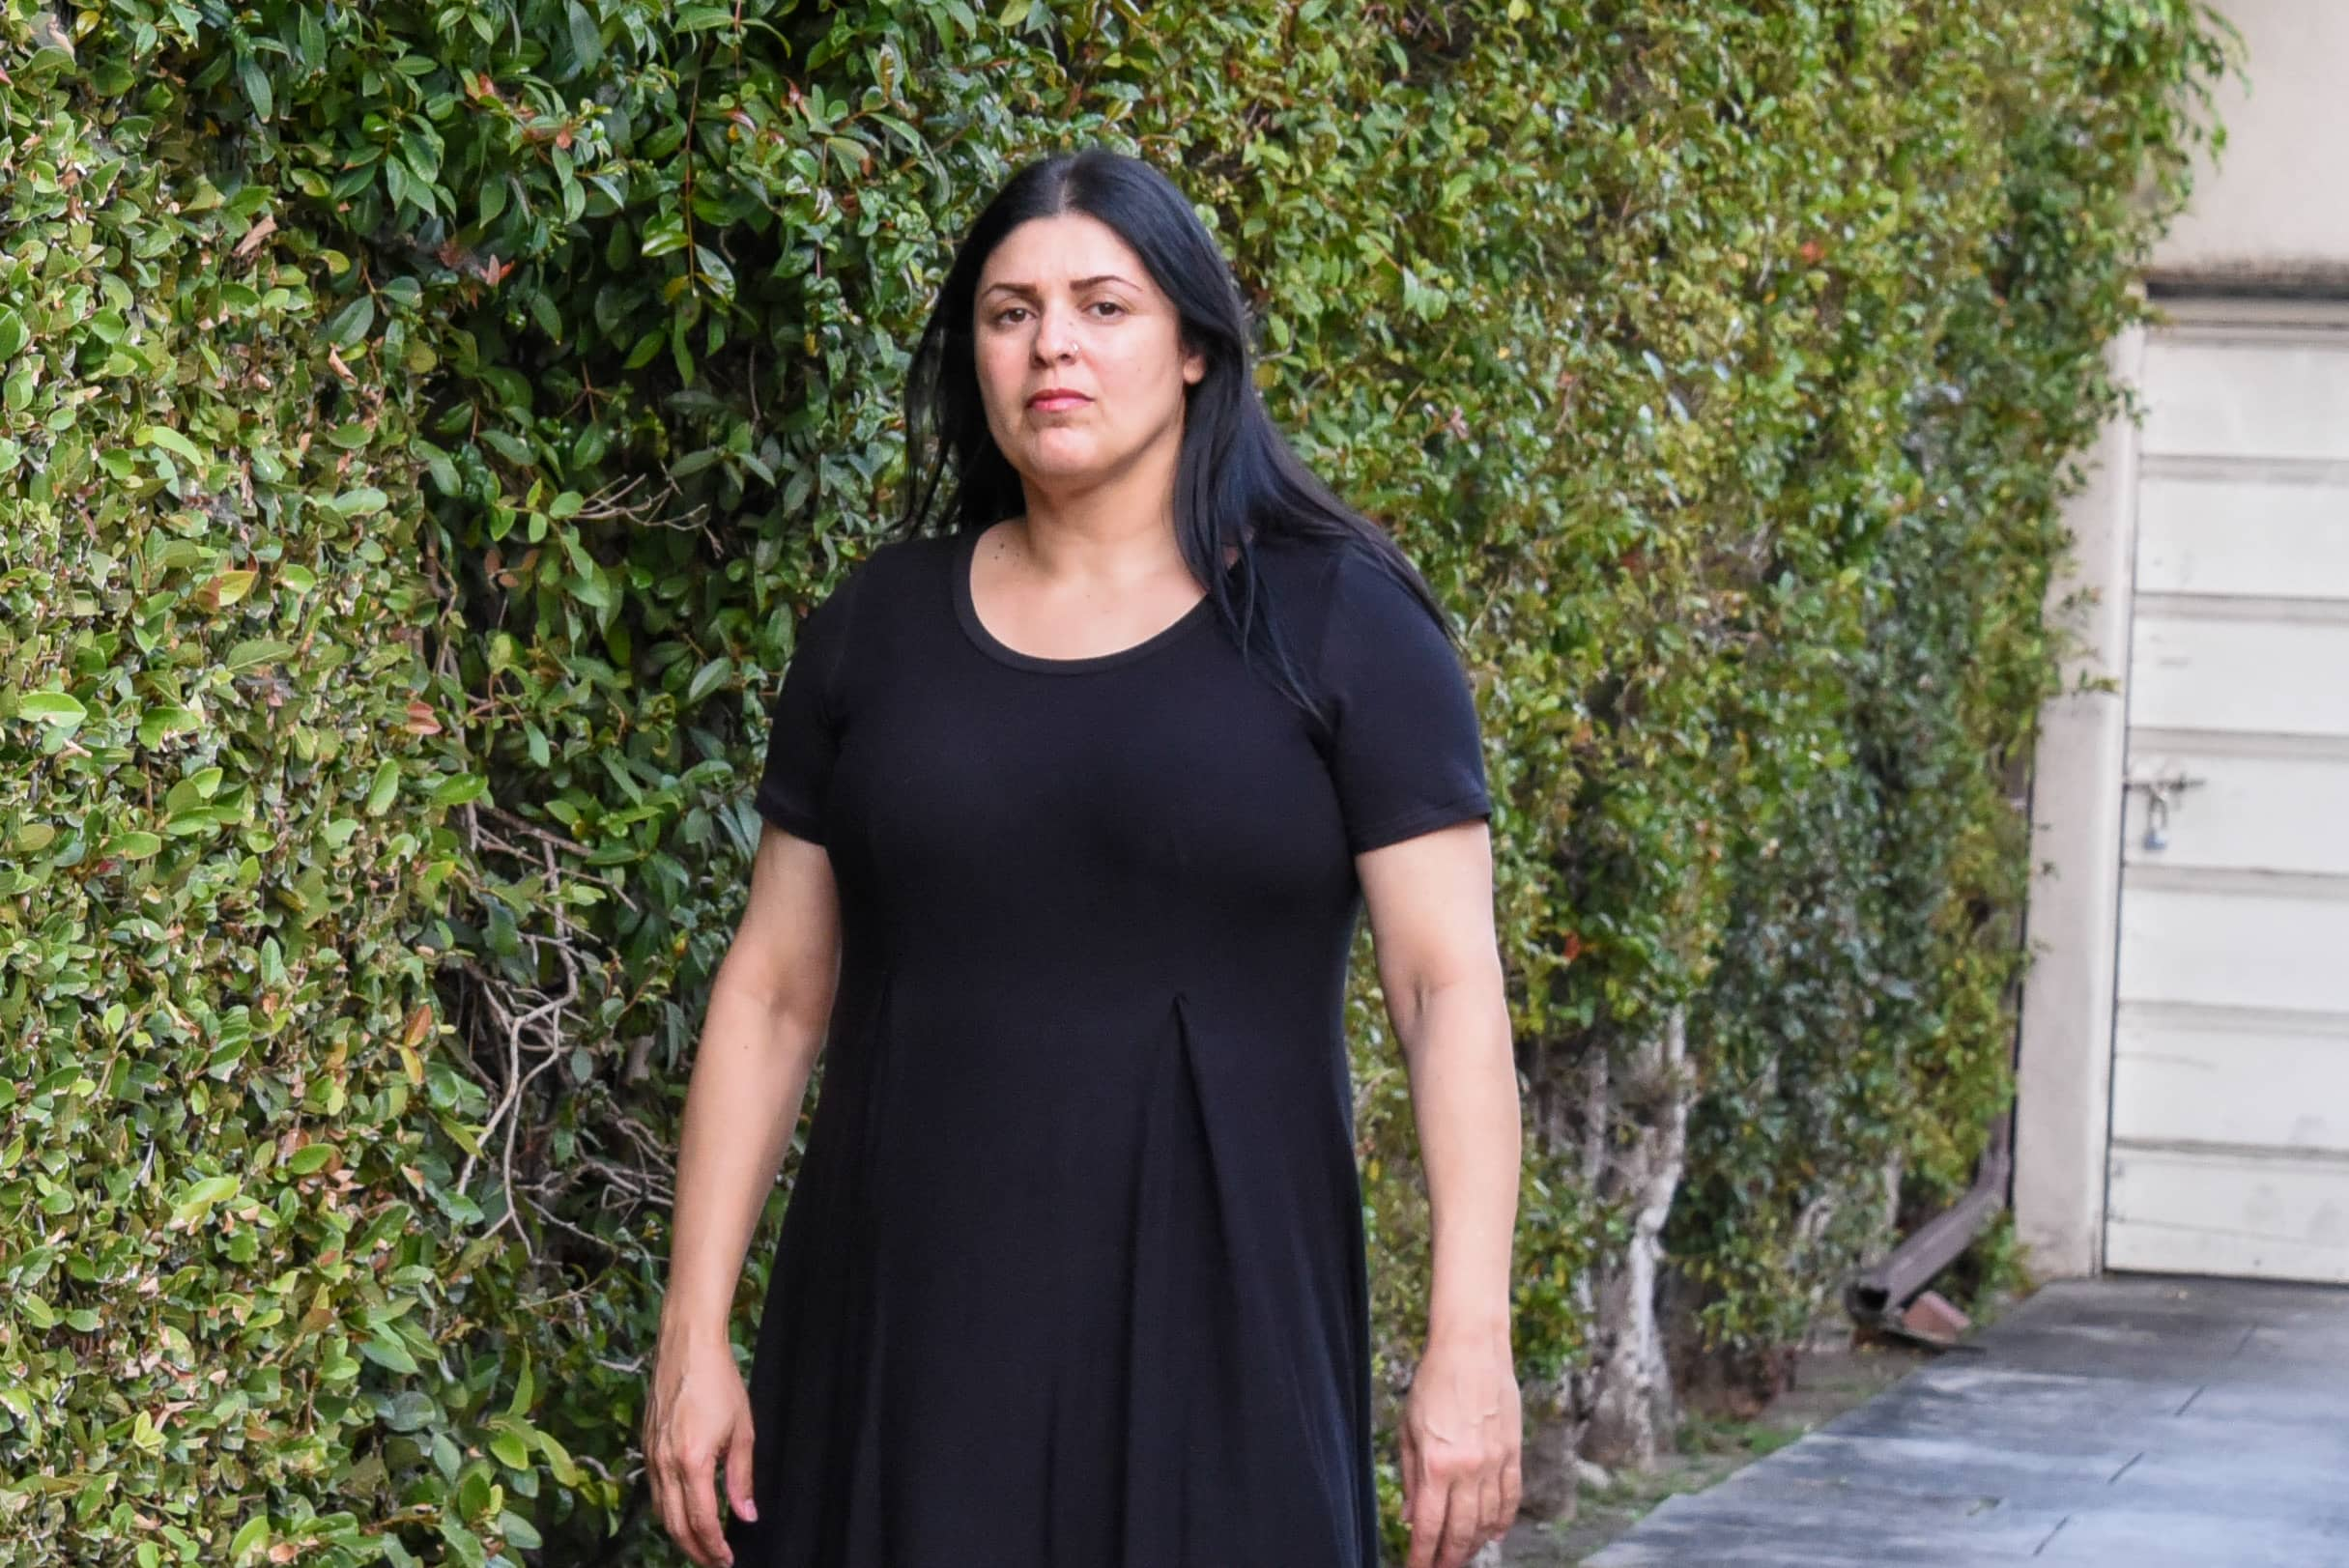 Image of me facing the camera, full body shot standing in front of a wall covered in tree vines, wearing a black Bexley dress